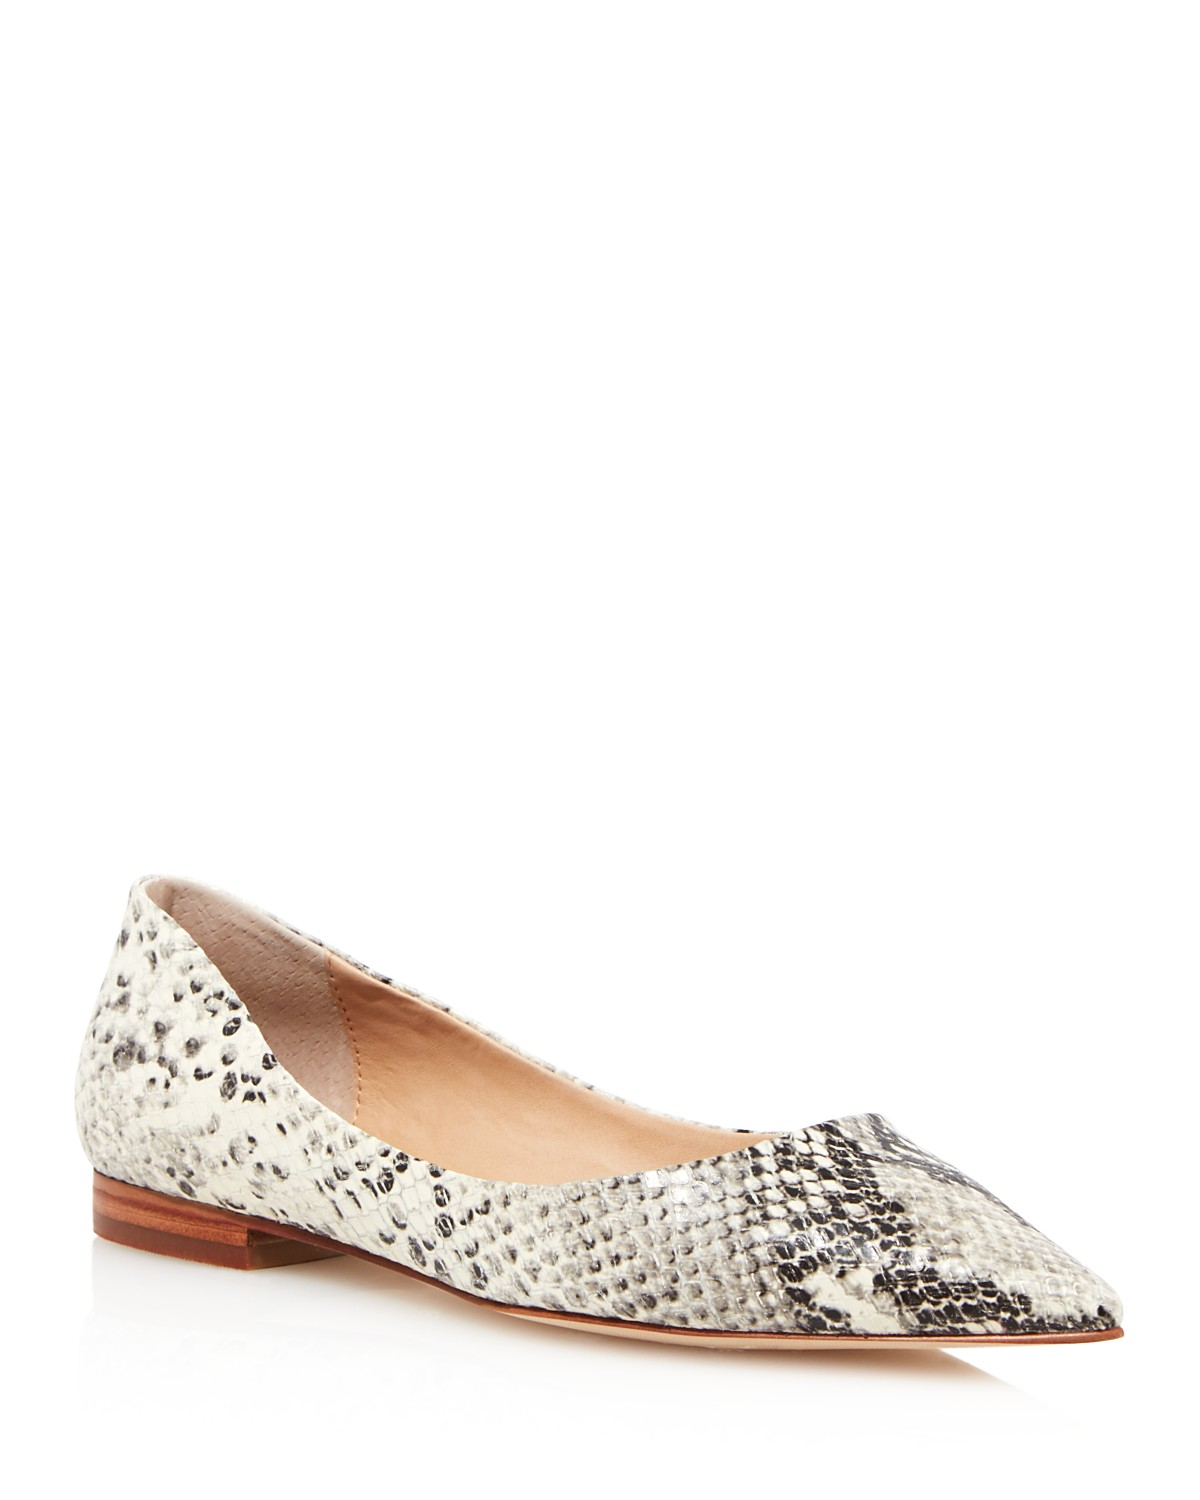 Aqua Women's Abel Snake-Embossed Leather Pointed Toe Flats - 100% Exclusive 99PmRj5P4